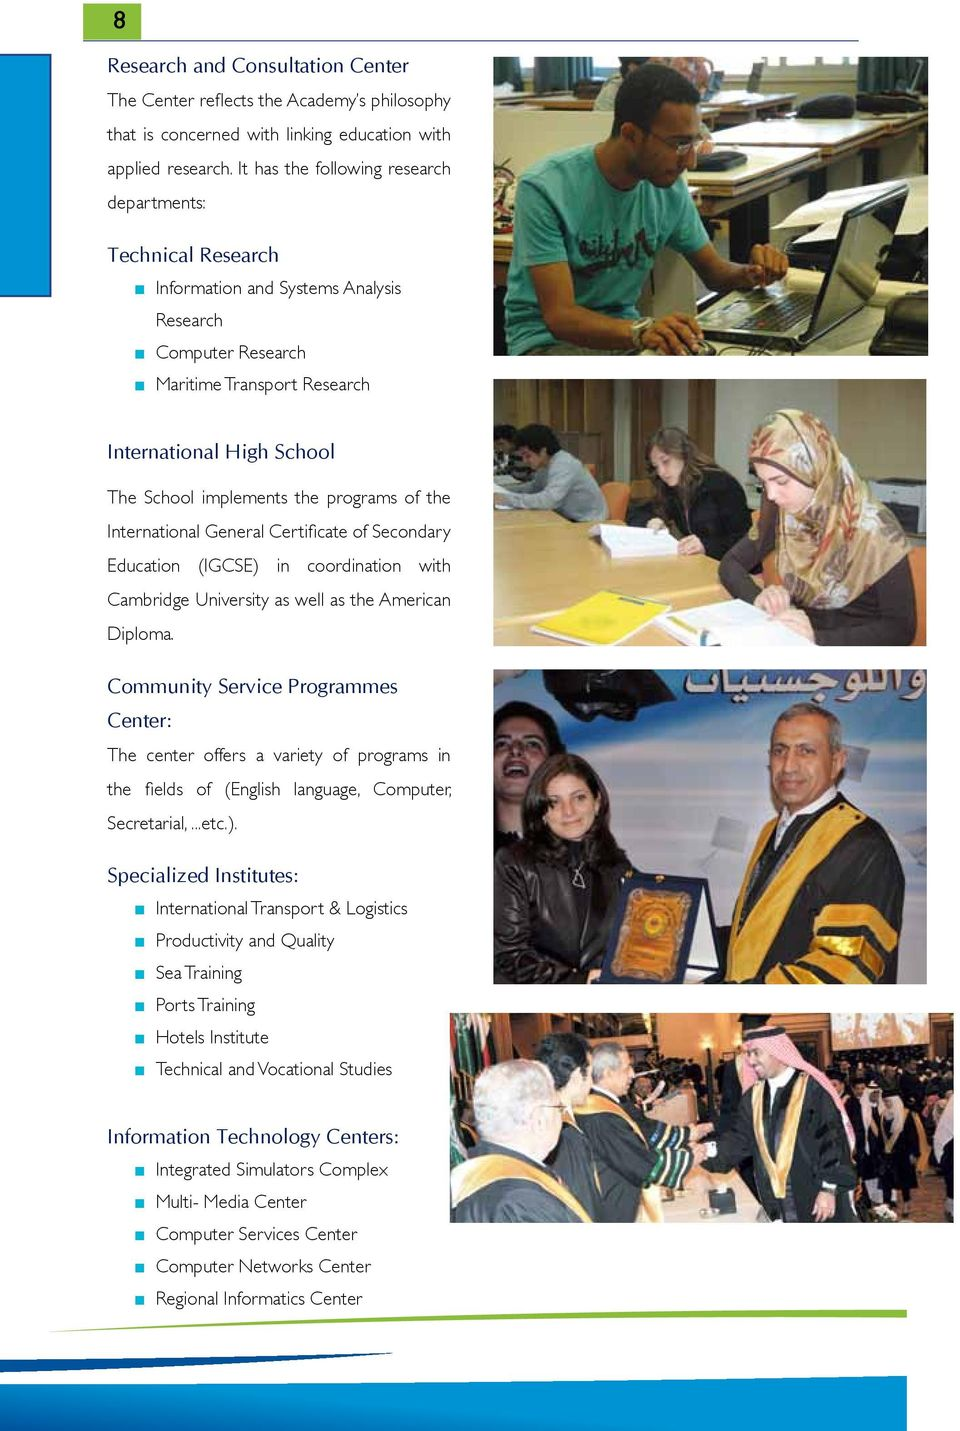 the programs of the International General Certificate of Secondary Education (IGCSE) in coordination with Cambridge University as well as the American Diploma.